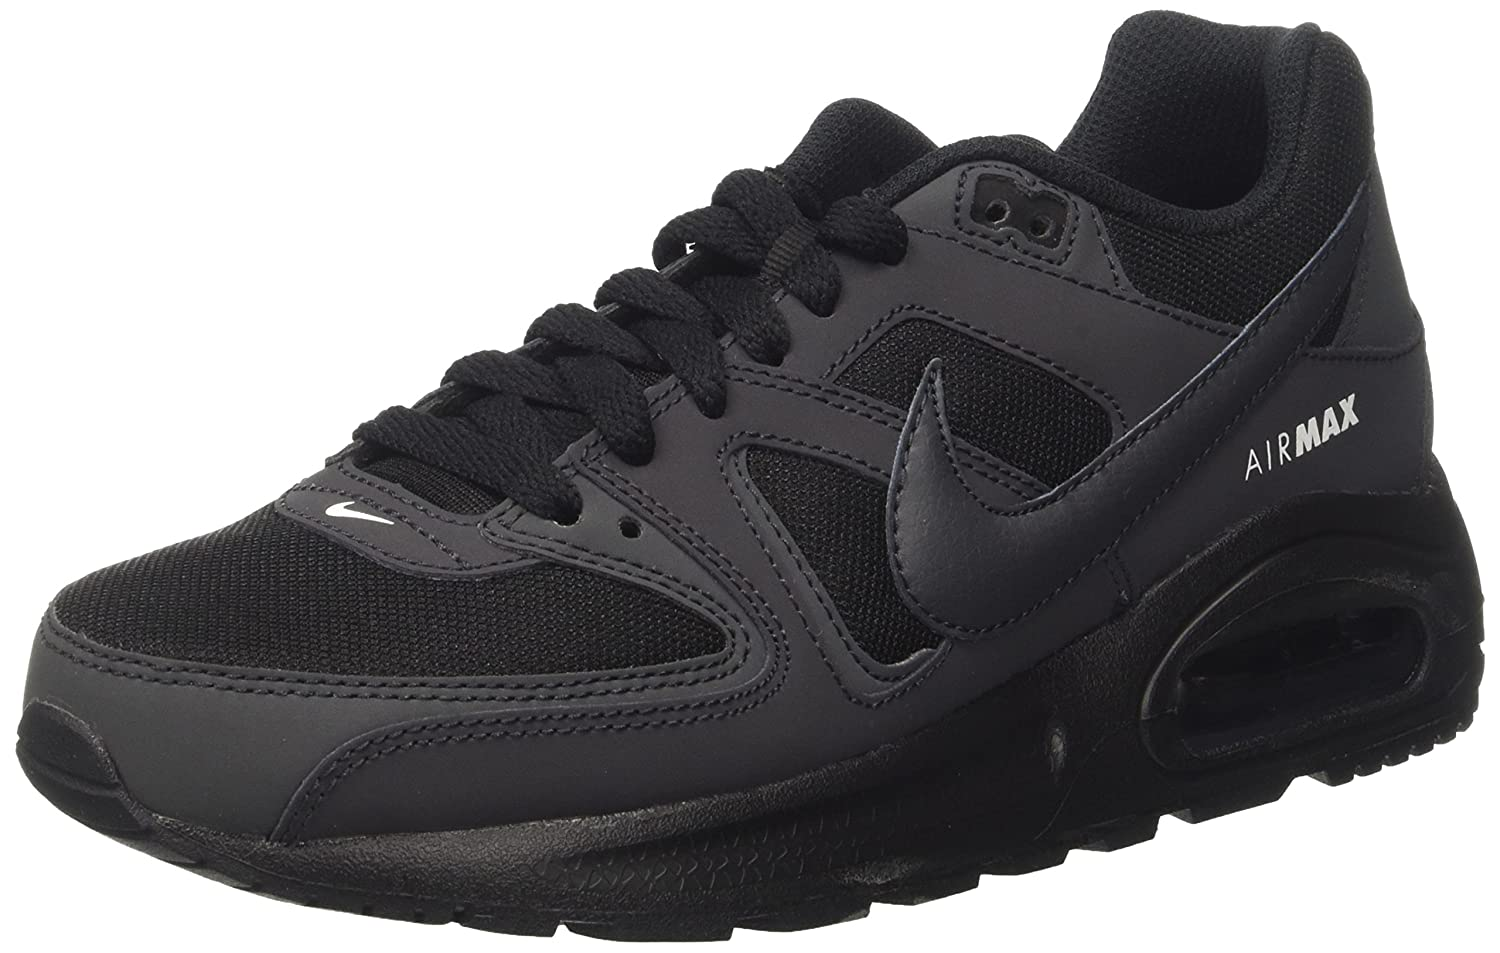 new product a537e fdb87 Amazon.com   NIKE - Air Max Command Flex GS Kids Running Shoes, Black Size  6 Youth   Shoes